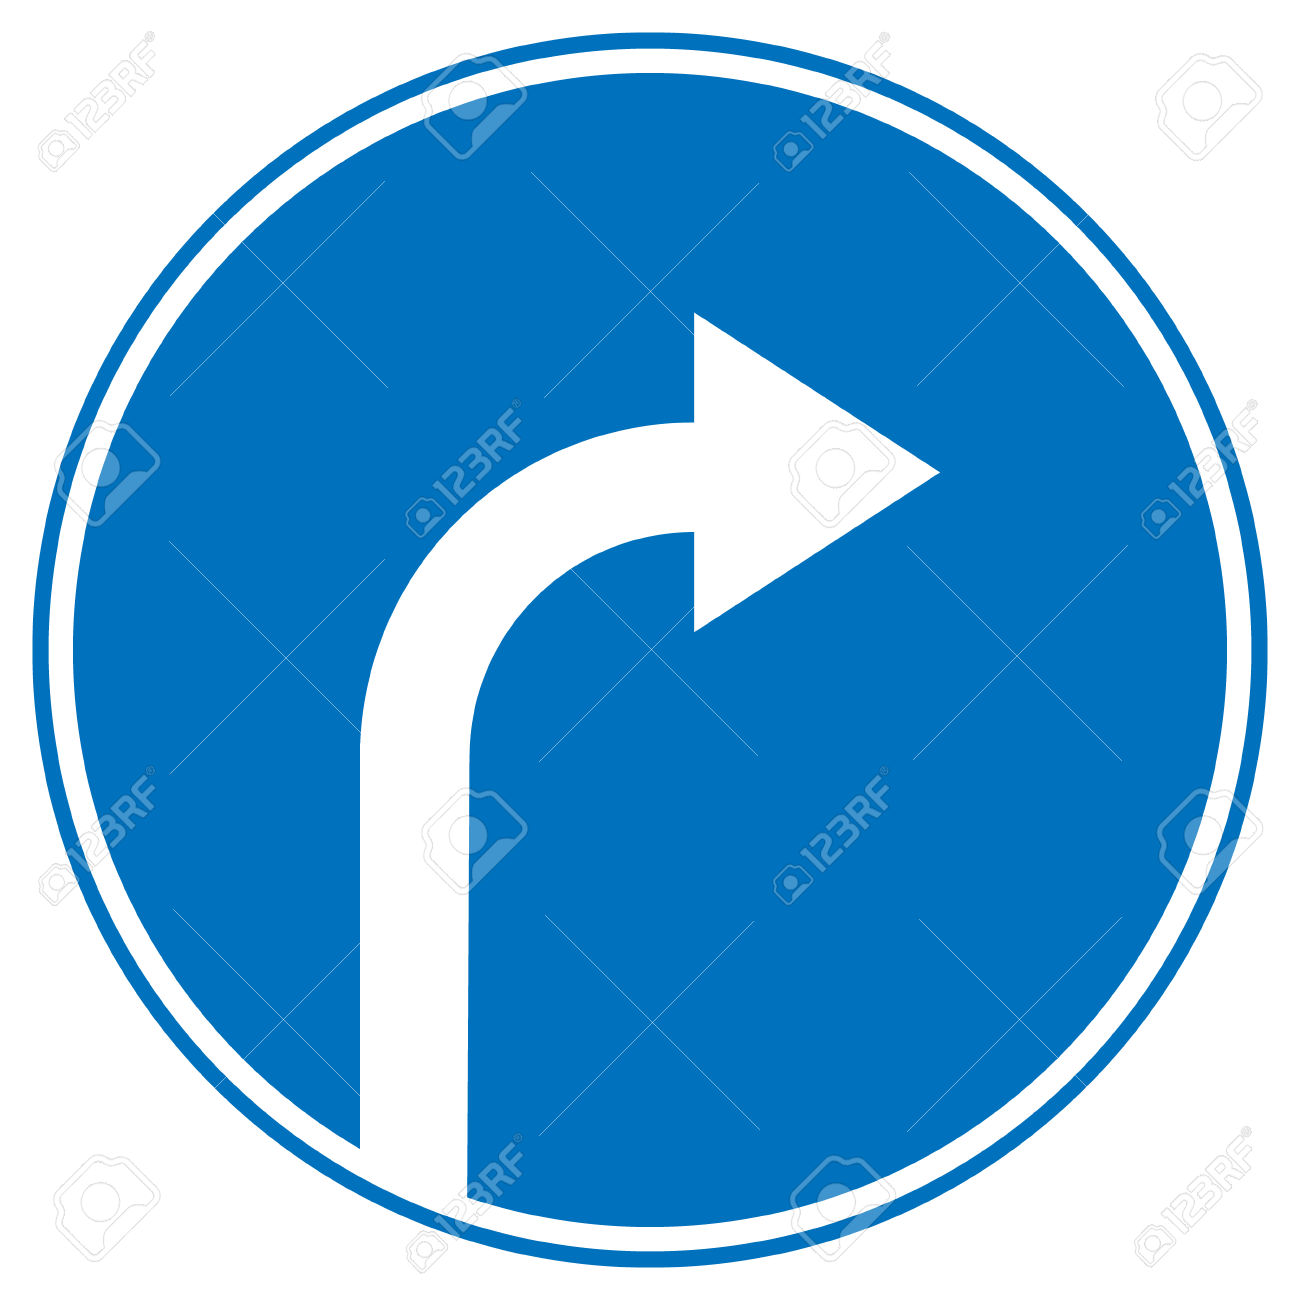 Turn Right Ahead Sign, Blue Round Isolated Roadside Traffic Sign.